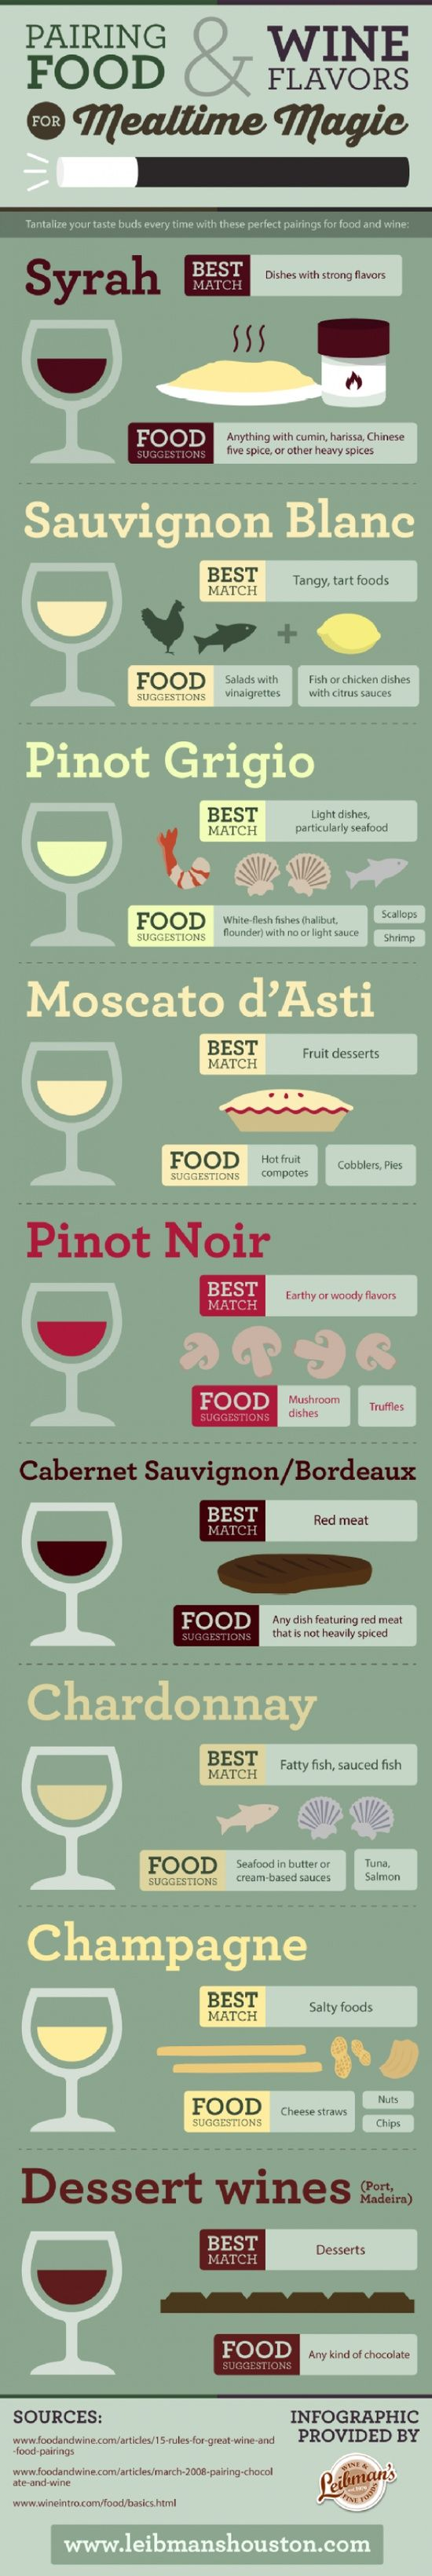 """Pairing Food and Wine Flavors for Mealtime Magic Infographic. Like use of best match, and educational """"food suggestions"""" tips."""